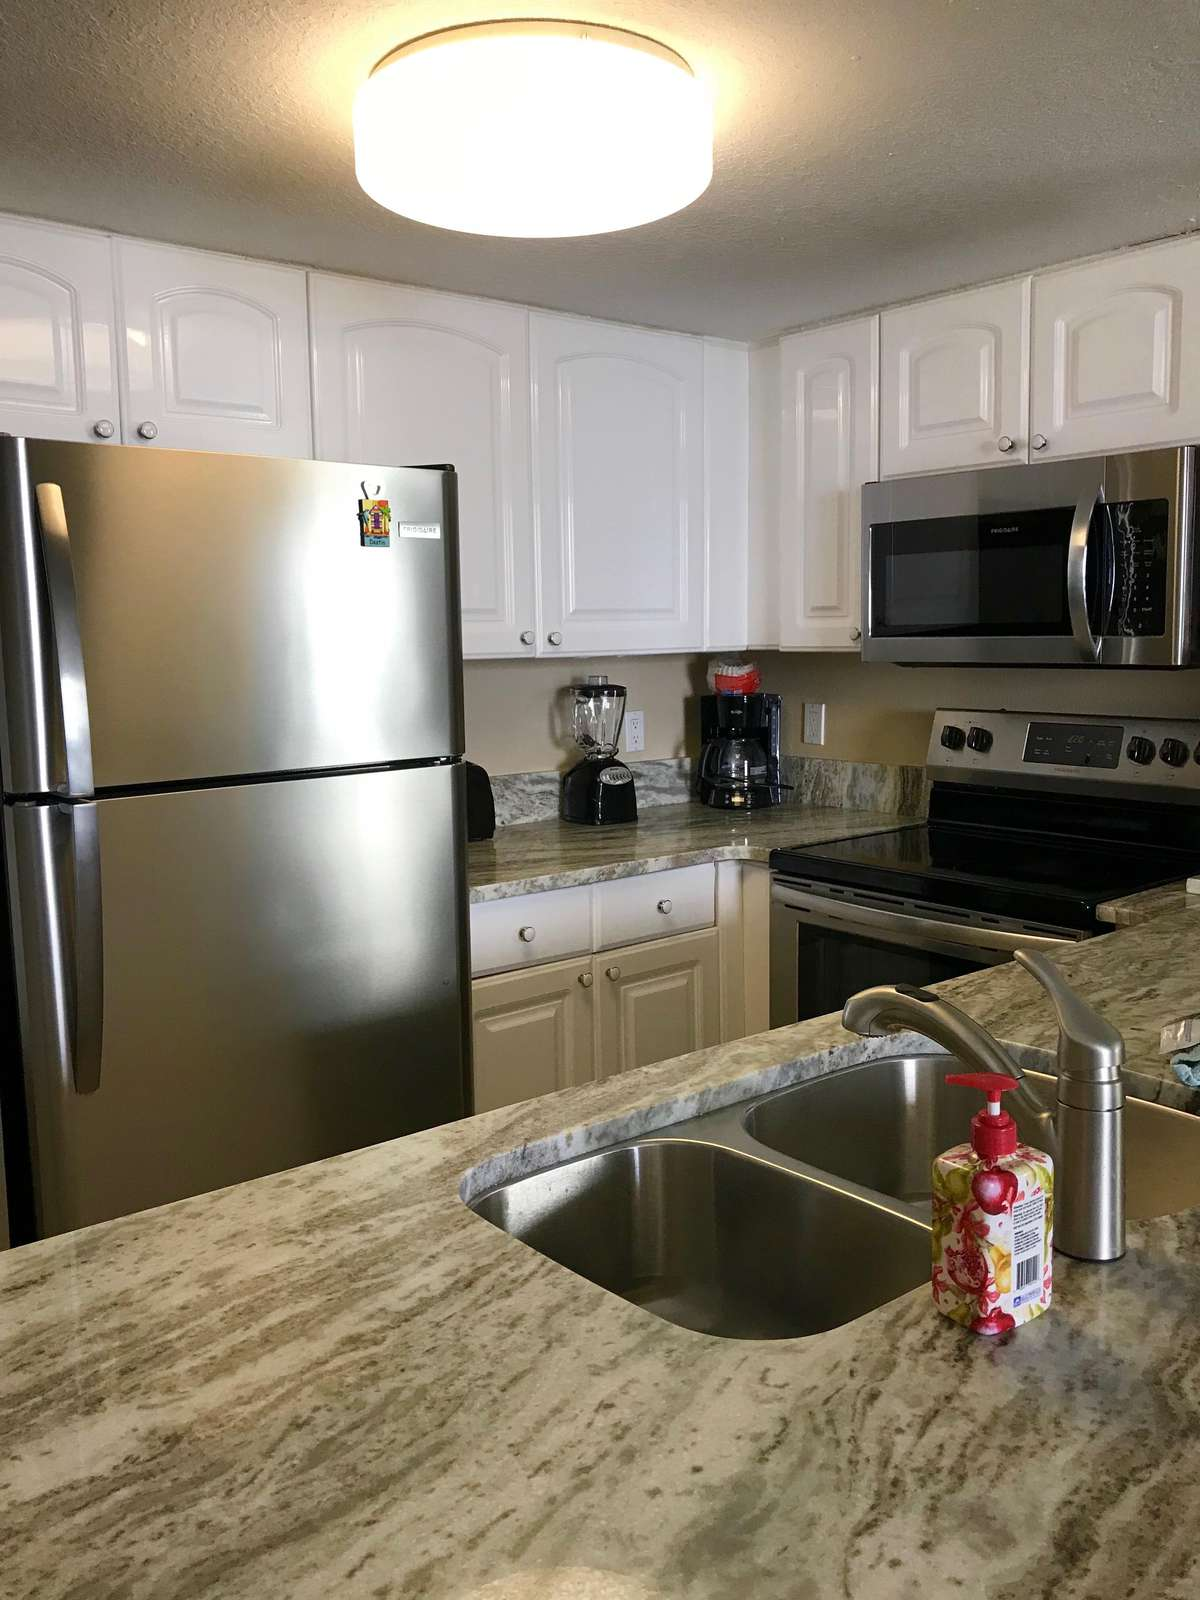 New granite and appliances